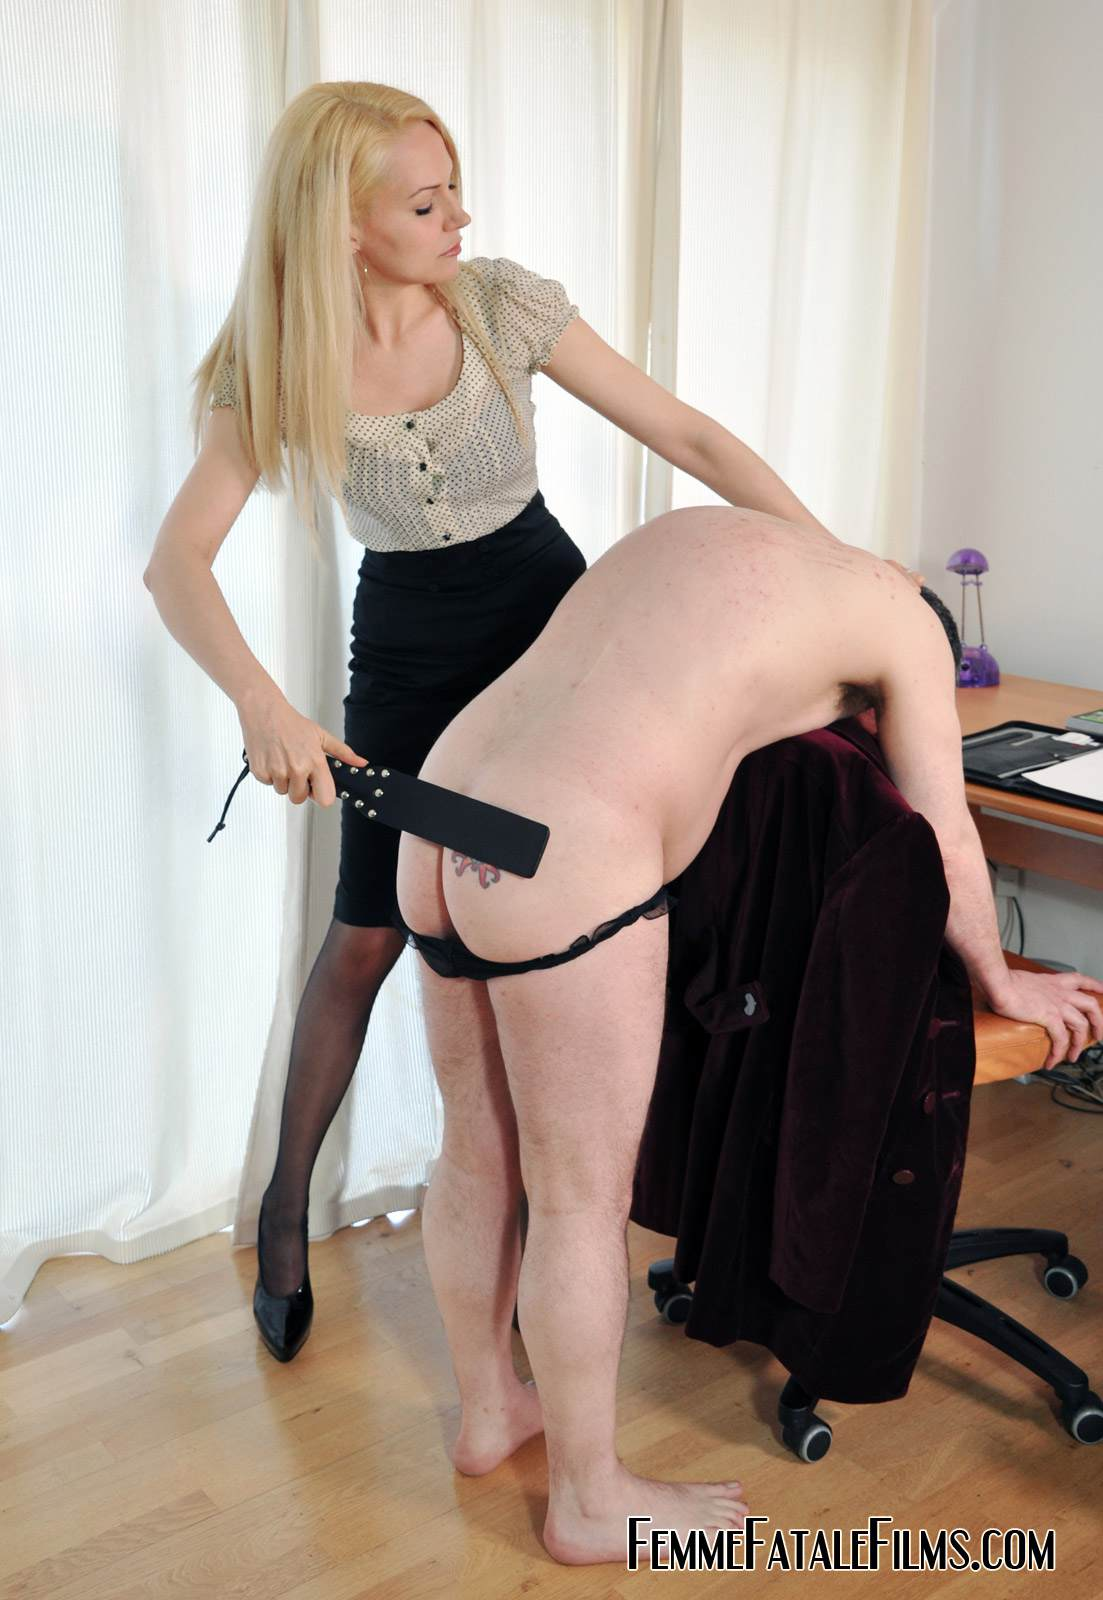 Picture #10 of Job interview ends up well for dominant secretary who spanks her future boss over the knee